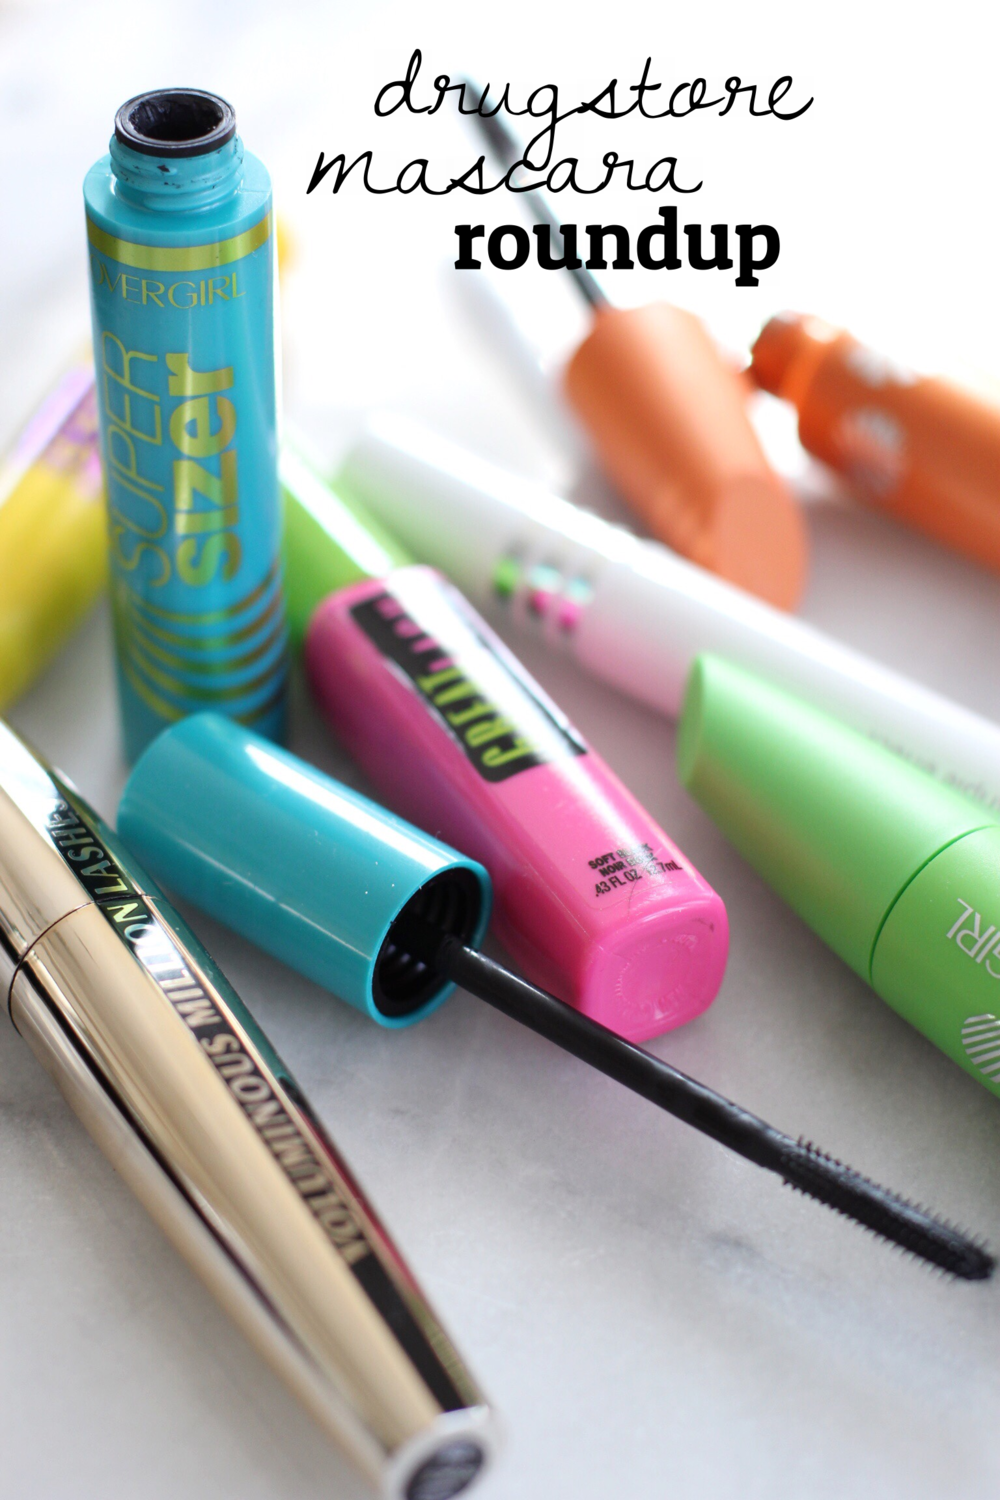 Best and worst of drugstore mascara - The Pastiche